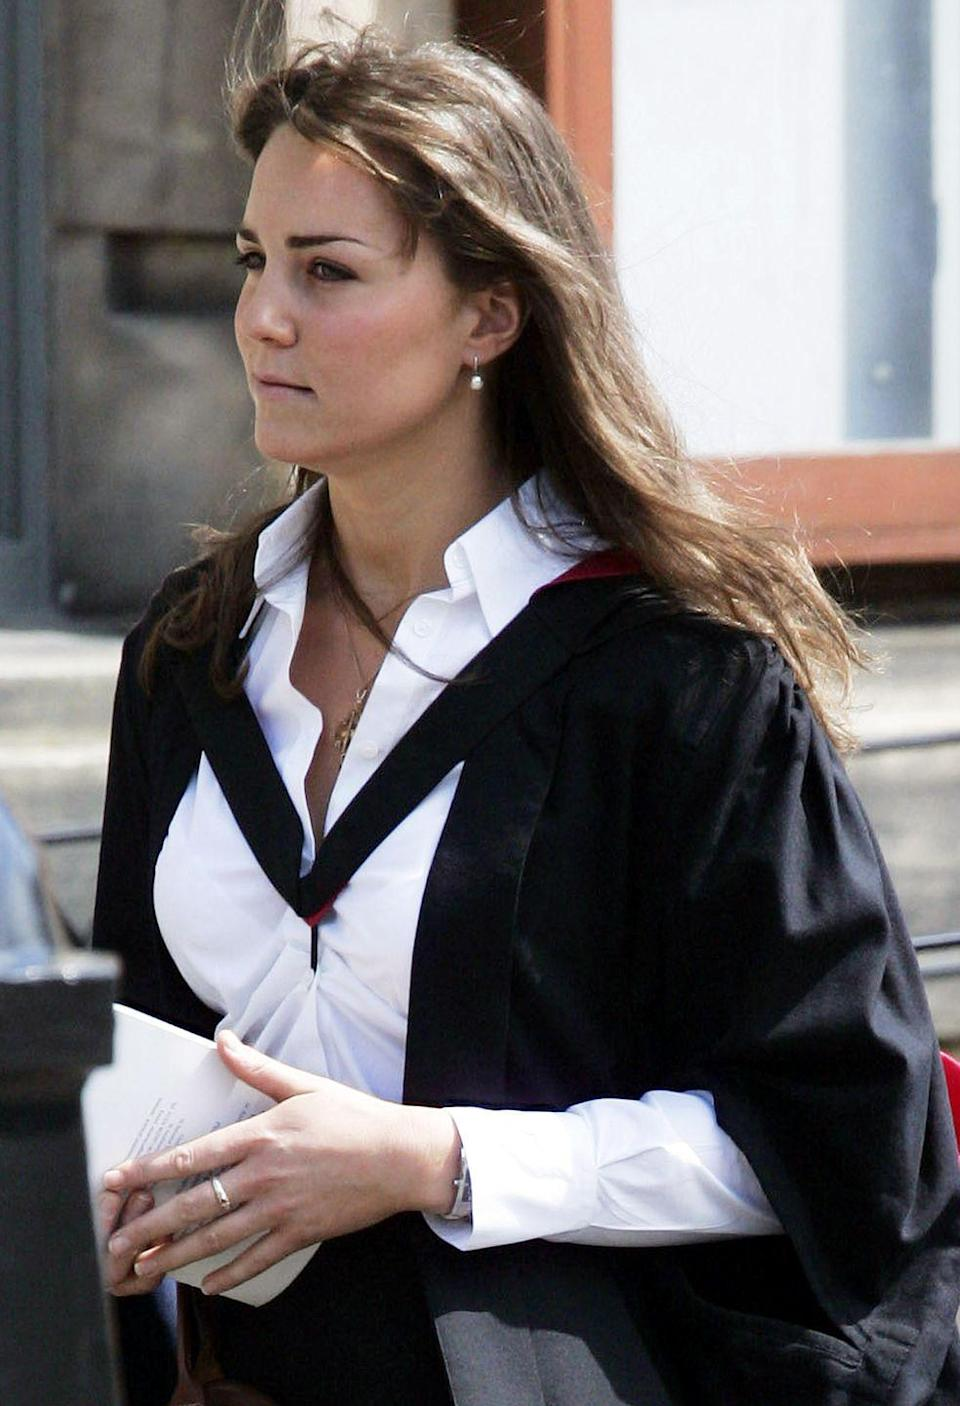 """<p>Kate Middleton wore the rose gold and pearl ring Prince William gave her to her June 2005 graduation from St. Andrew's University, where the pair first met. </p><p><strong>More</strong>: <a href=""""https://www.townandcountrymag.com/society/tradition/a35770428/kate-middleton-prince-william-relationship-full-timeline/"""" rel=""""nofollow noopener"""" target=""""_blank"""" data-ylk=""""slk:Prince William and Kate Middleton's Relationship Timeline"""" class=""""link rapid-noclick-resp"""">Prince William and Kate Middleton's Relationship Timeline</a></p>"""